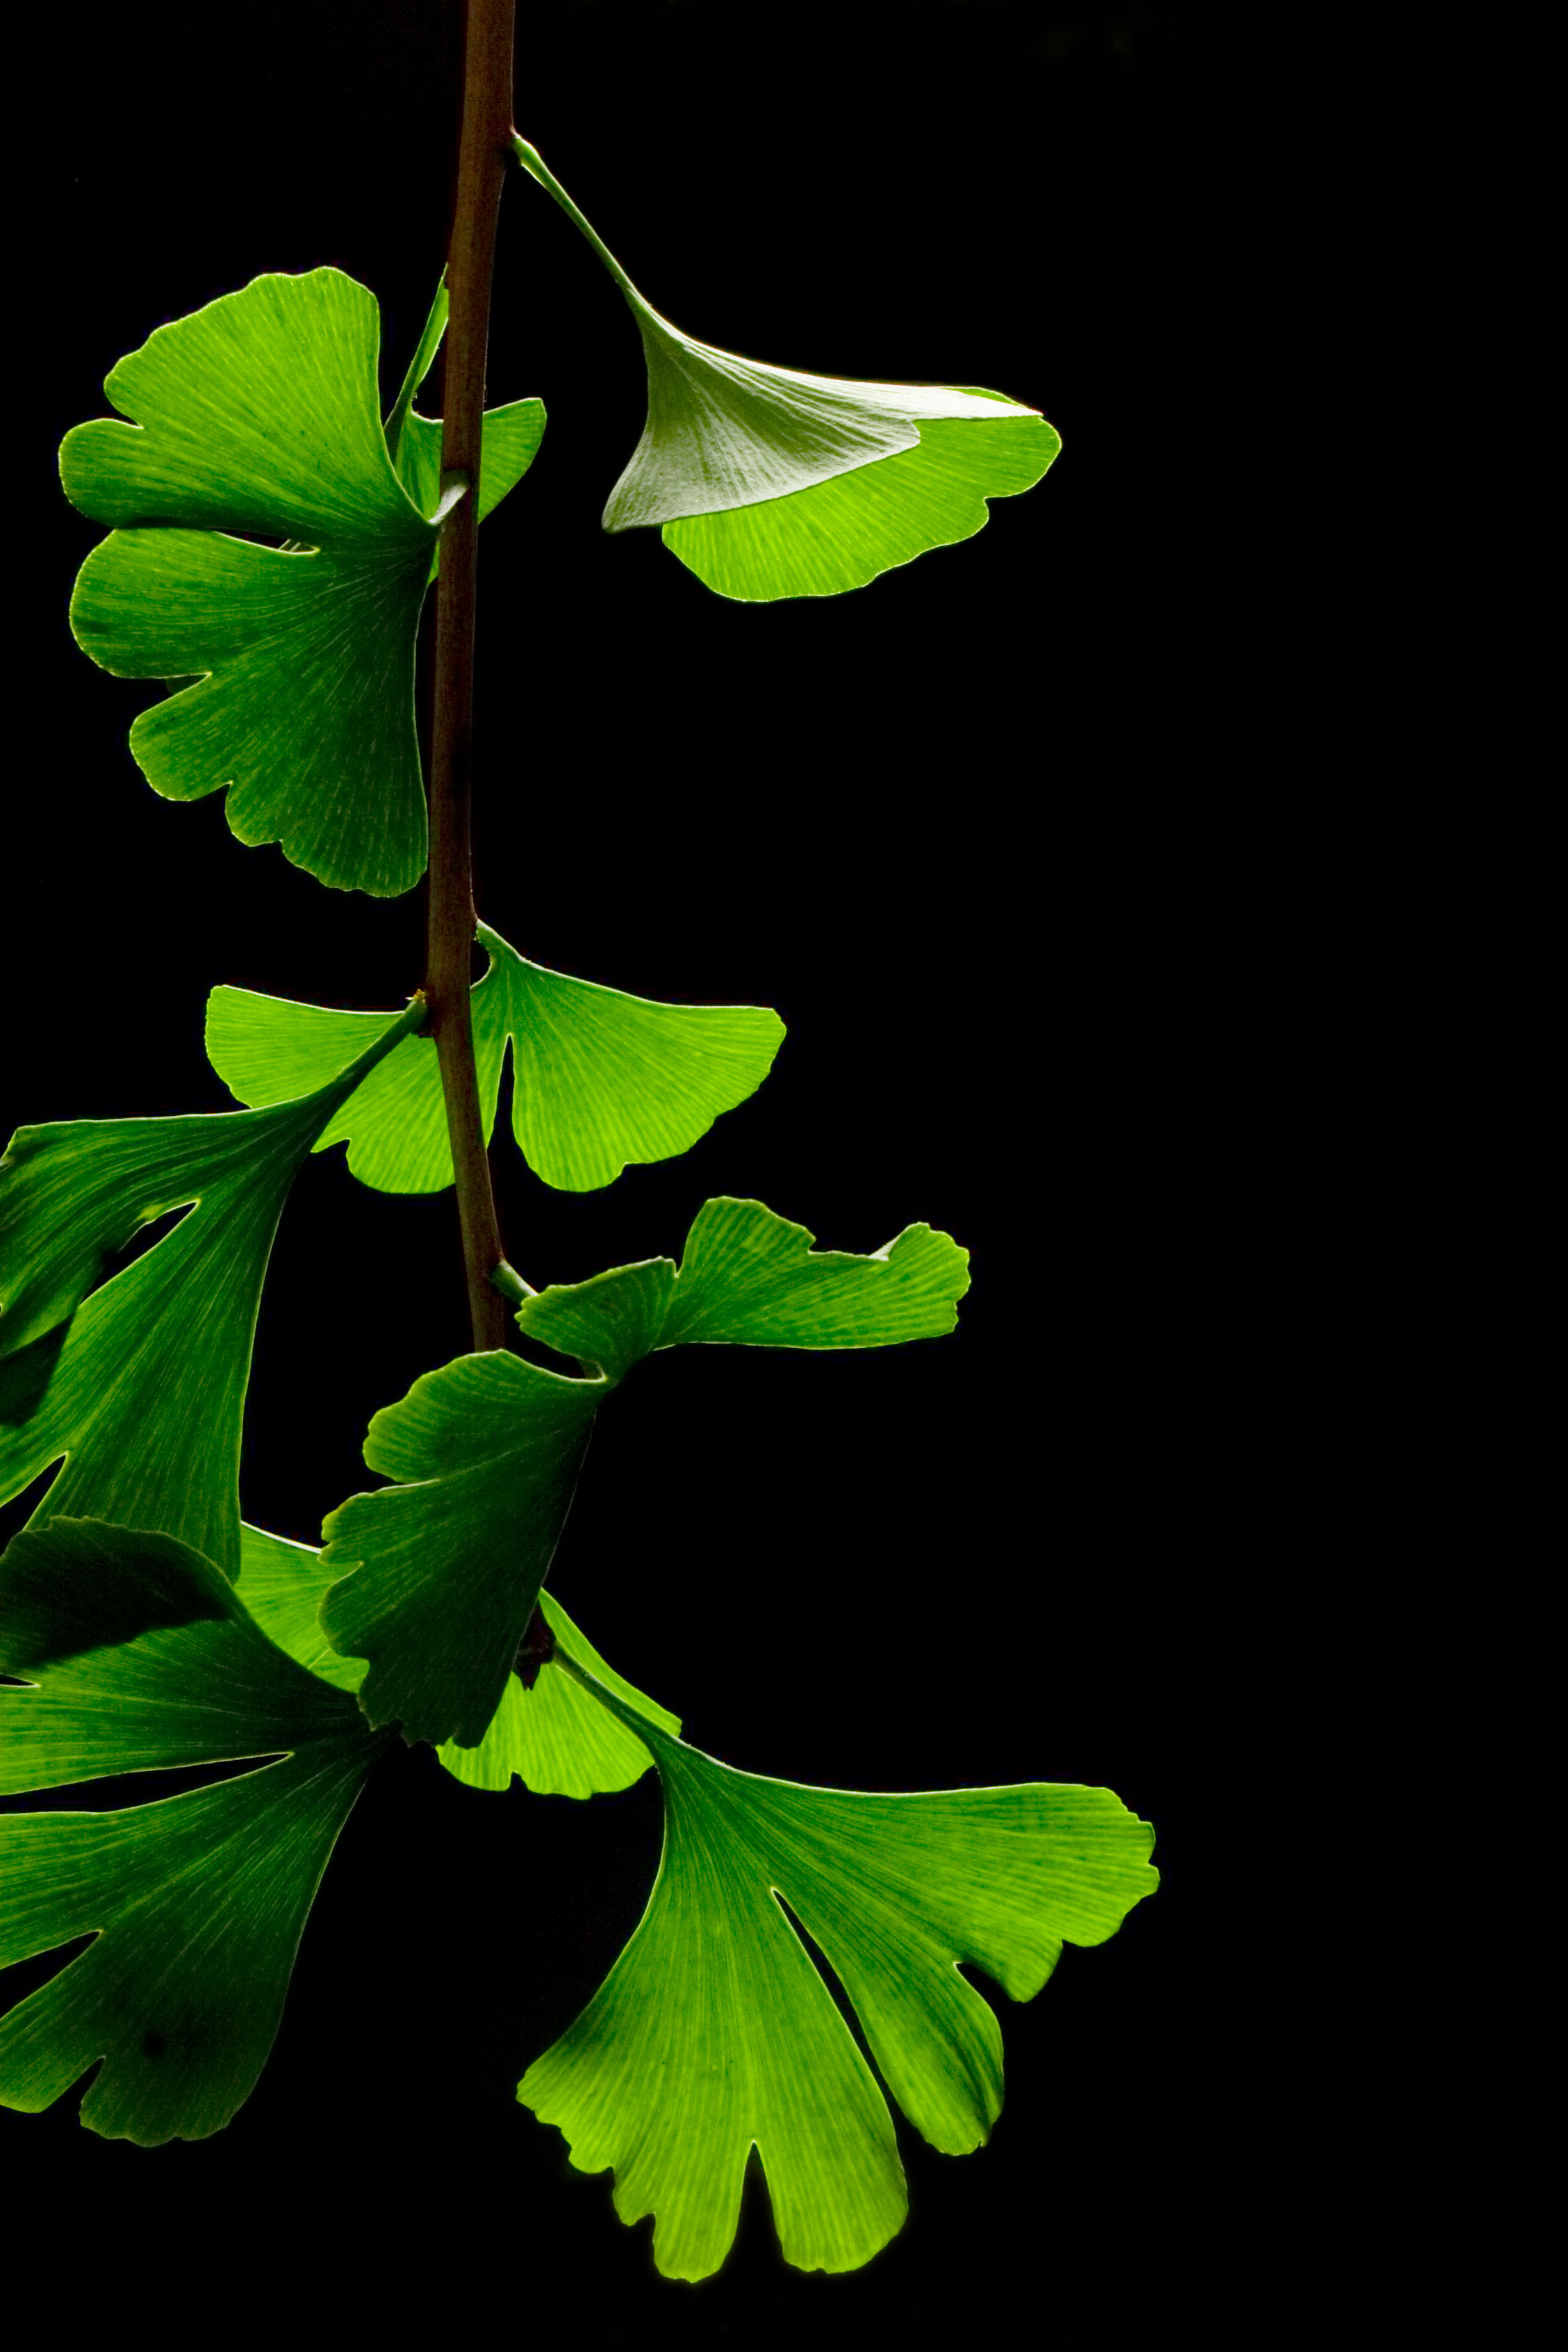 Description Ginkgo Biloba Leaves - Black Background.jpg